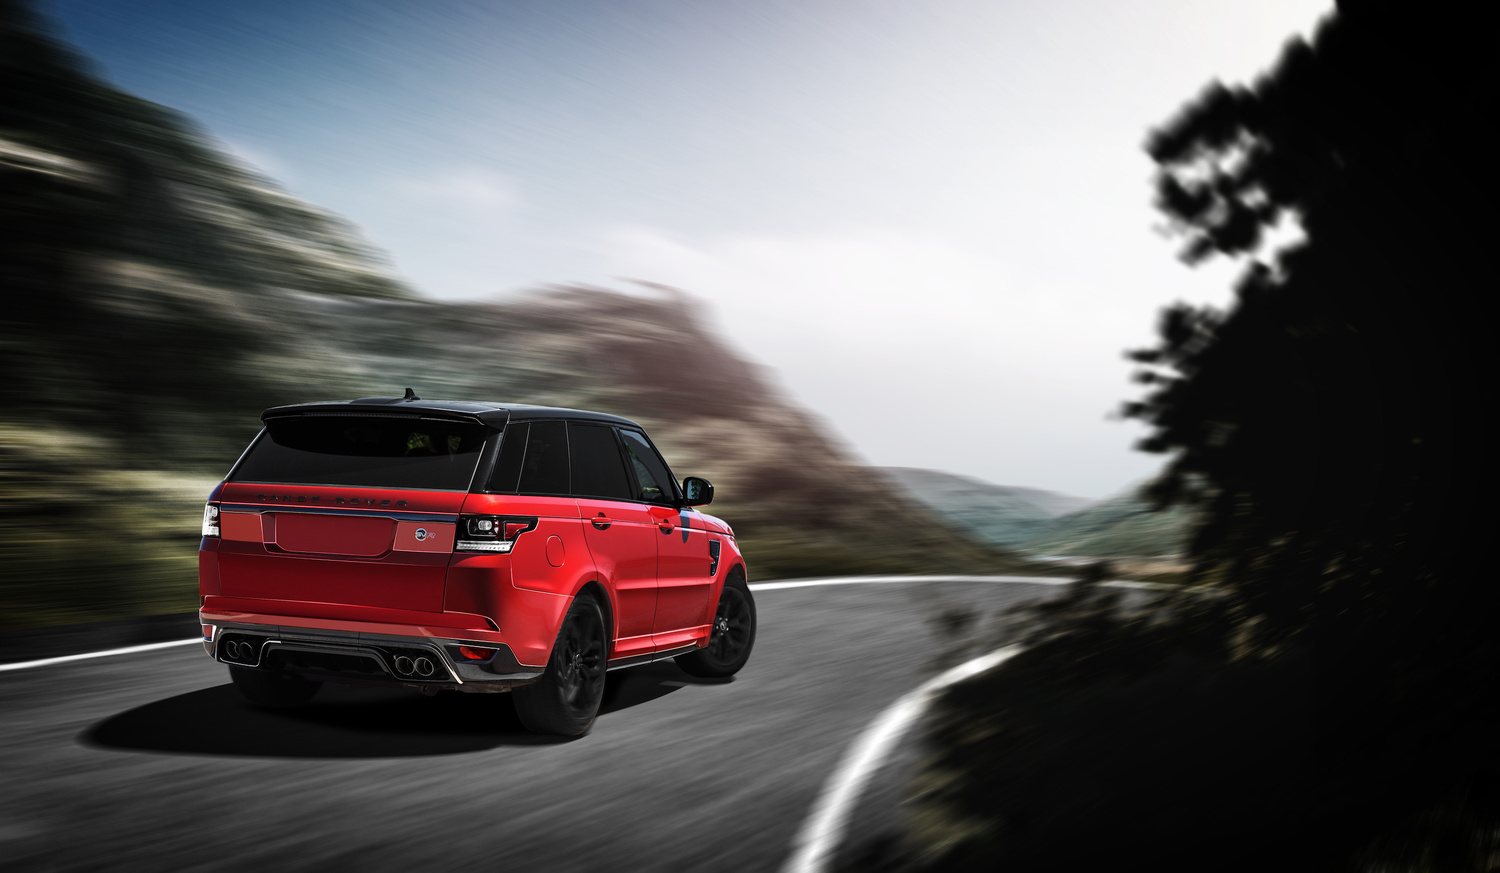 Range Rover Sport  by cam bowers